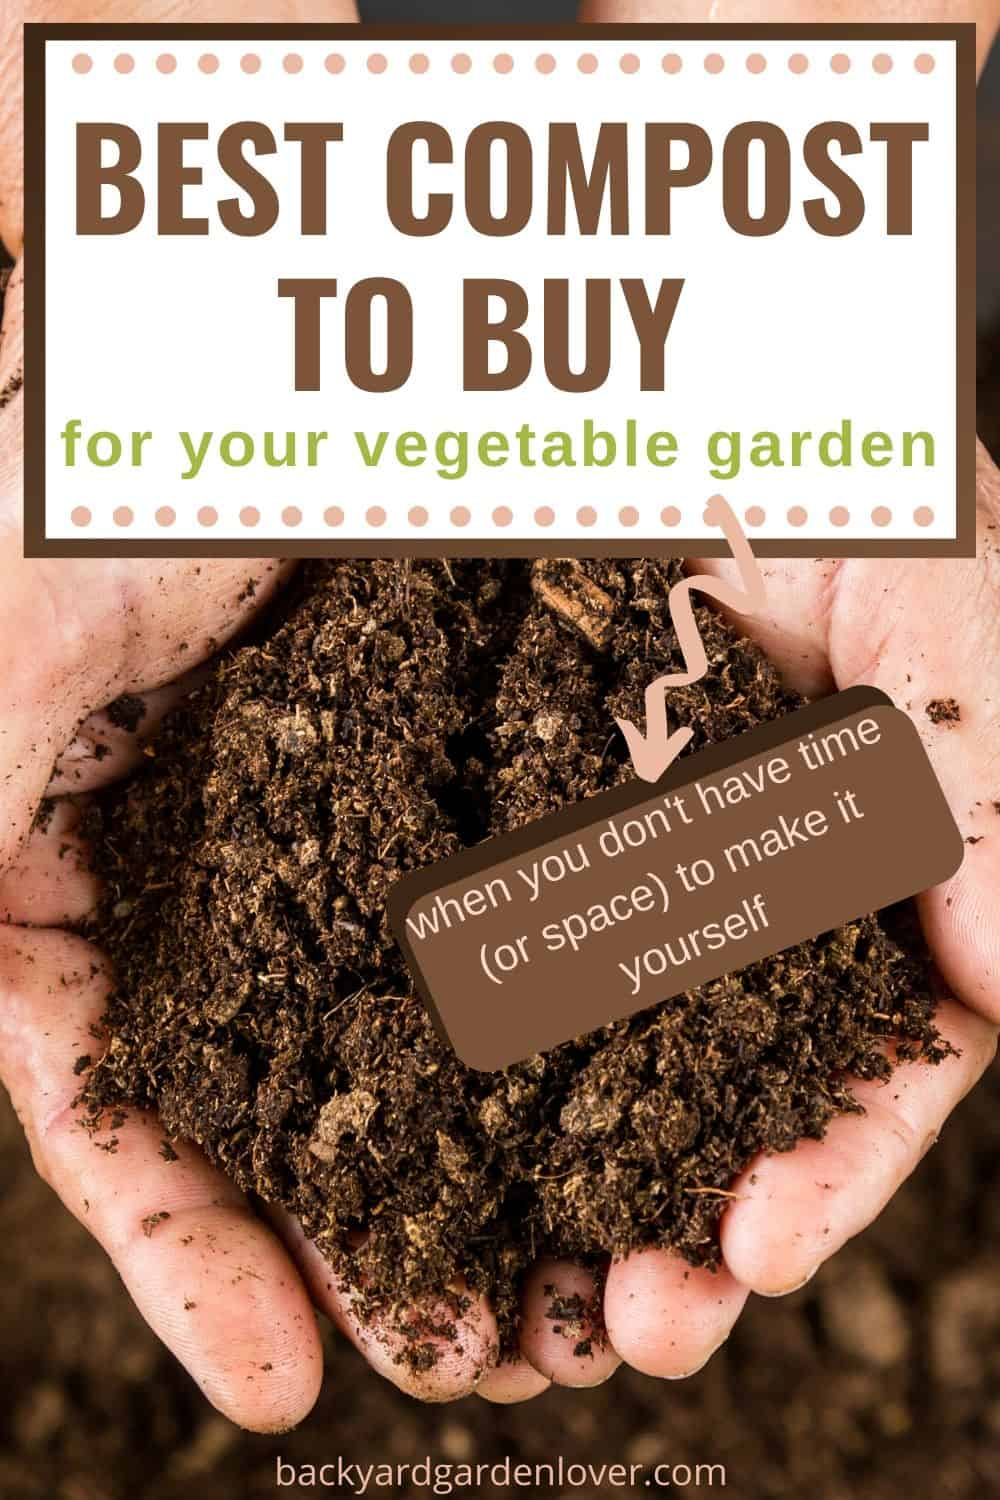 The best compost to buy for vegetable garden